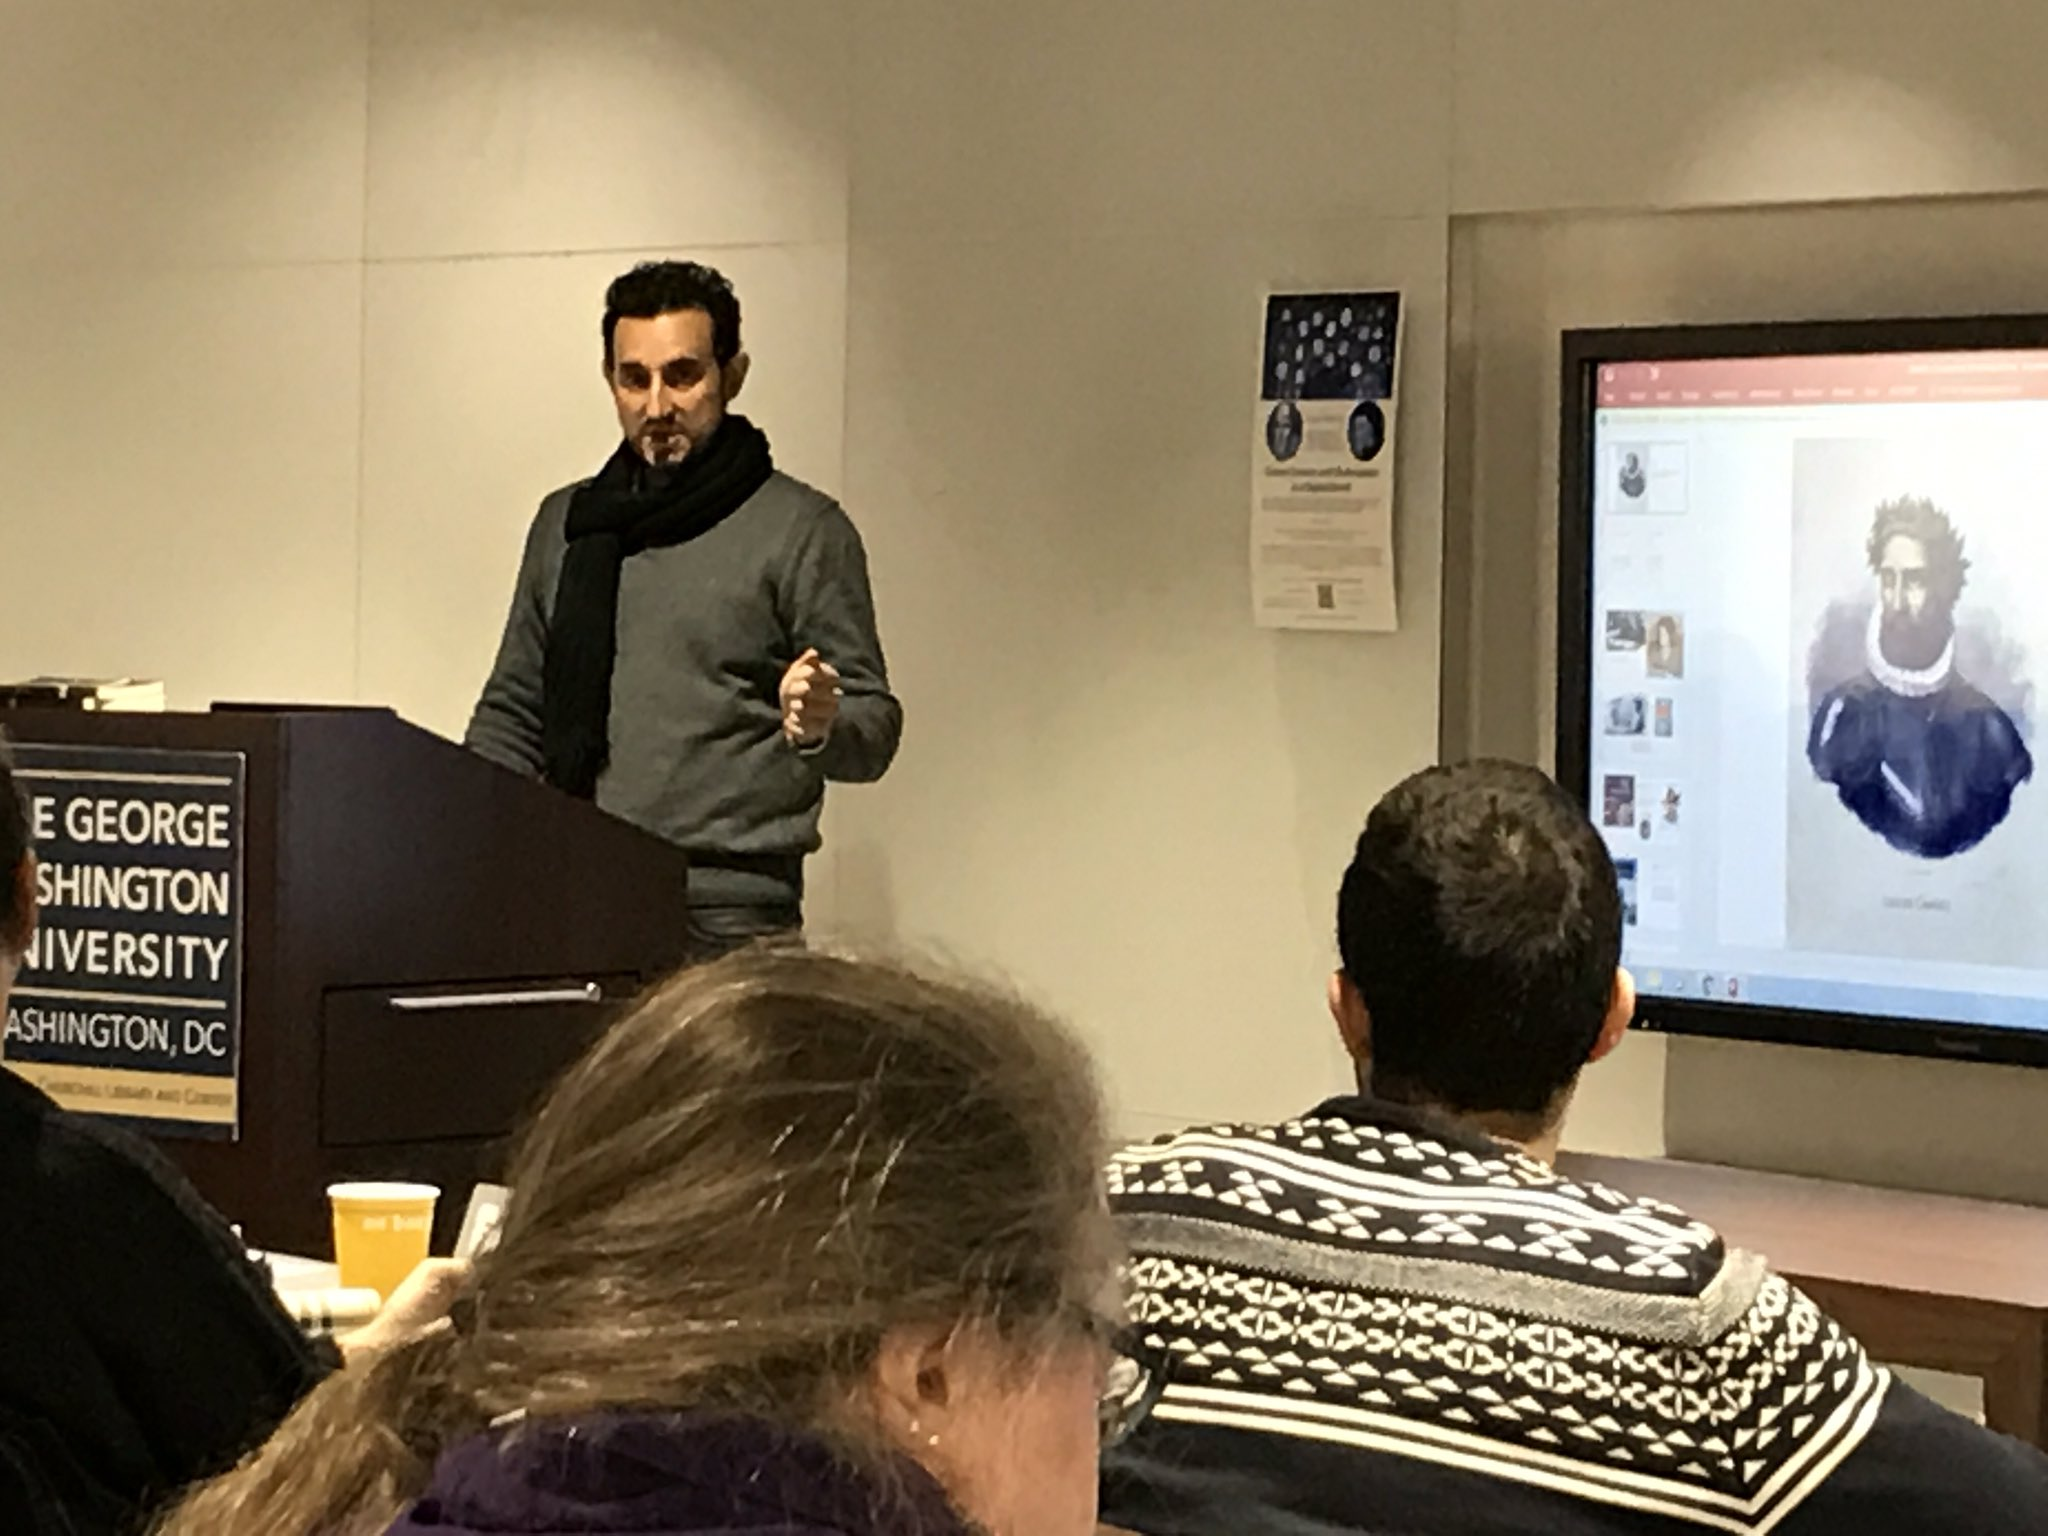 """José Francisco Botelho opens #gwdh17 w/ """"Of pilgrims, knights and cantadores: translating Chaucer and Shakespeare in modern Brazil"""" https://t.co/dd3YrxjYLu"""